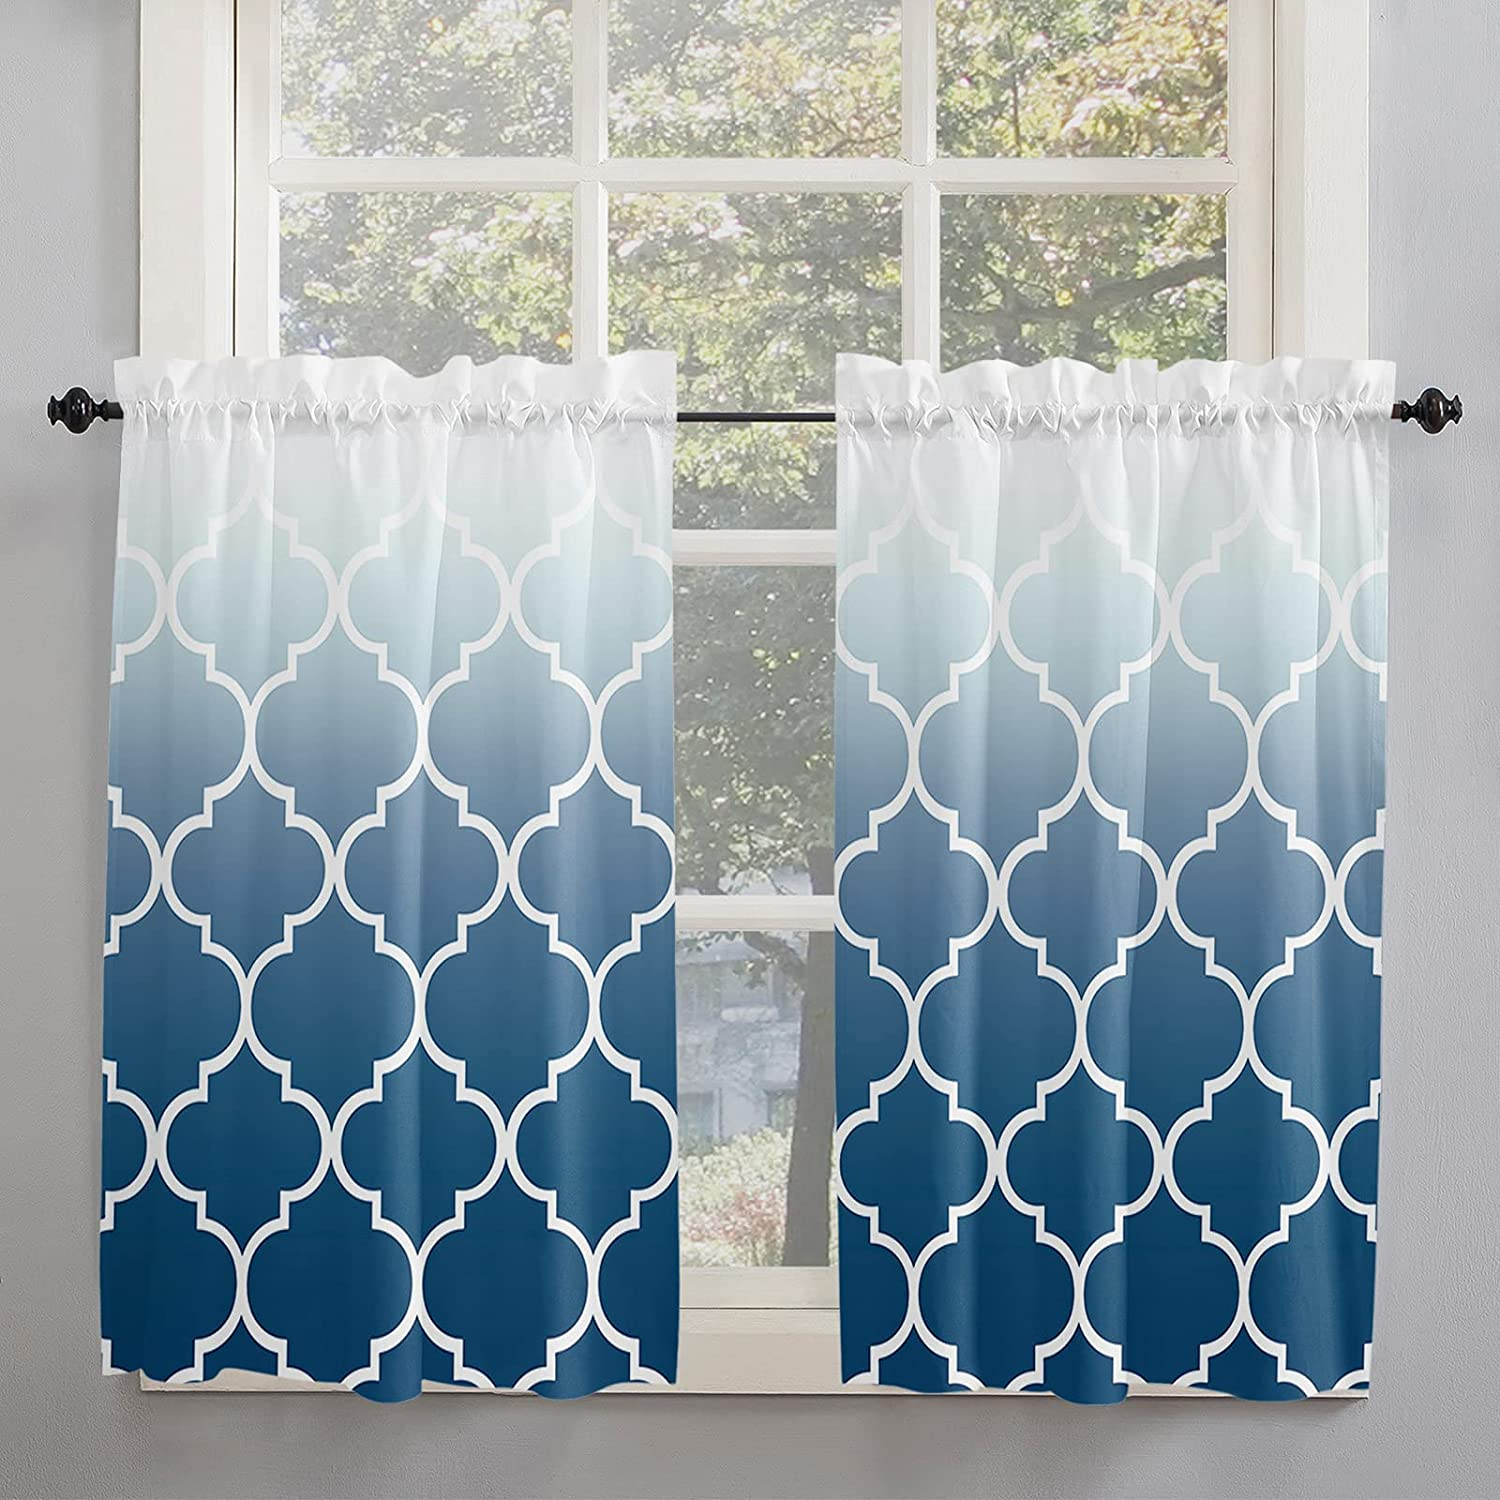 Blue Moroccan Geometric Ombre Kitchen Indefinitely Curtains All items in the store fo Inch Length 54